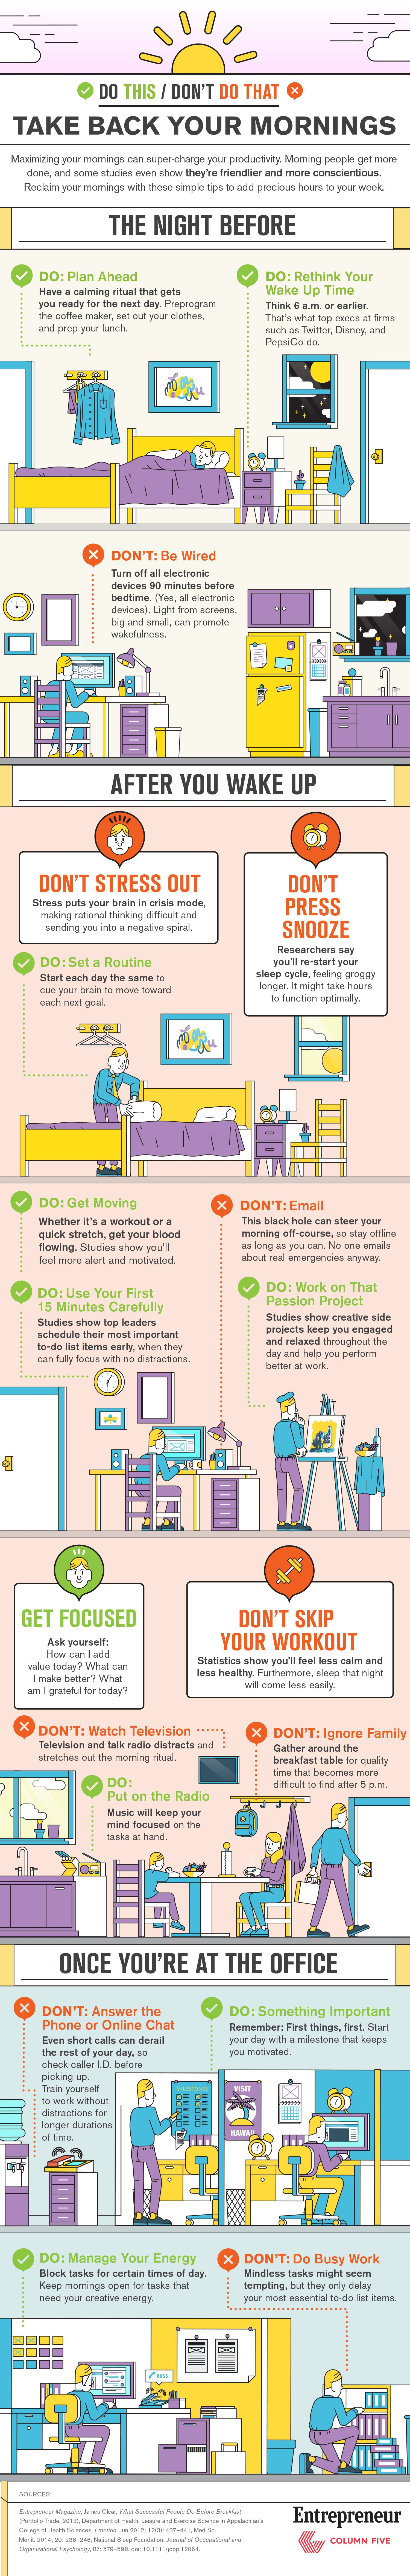 10 steps how to use stress to increase your productivity motivate - How To Use Social Media To Find Customers Infographic